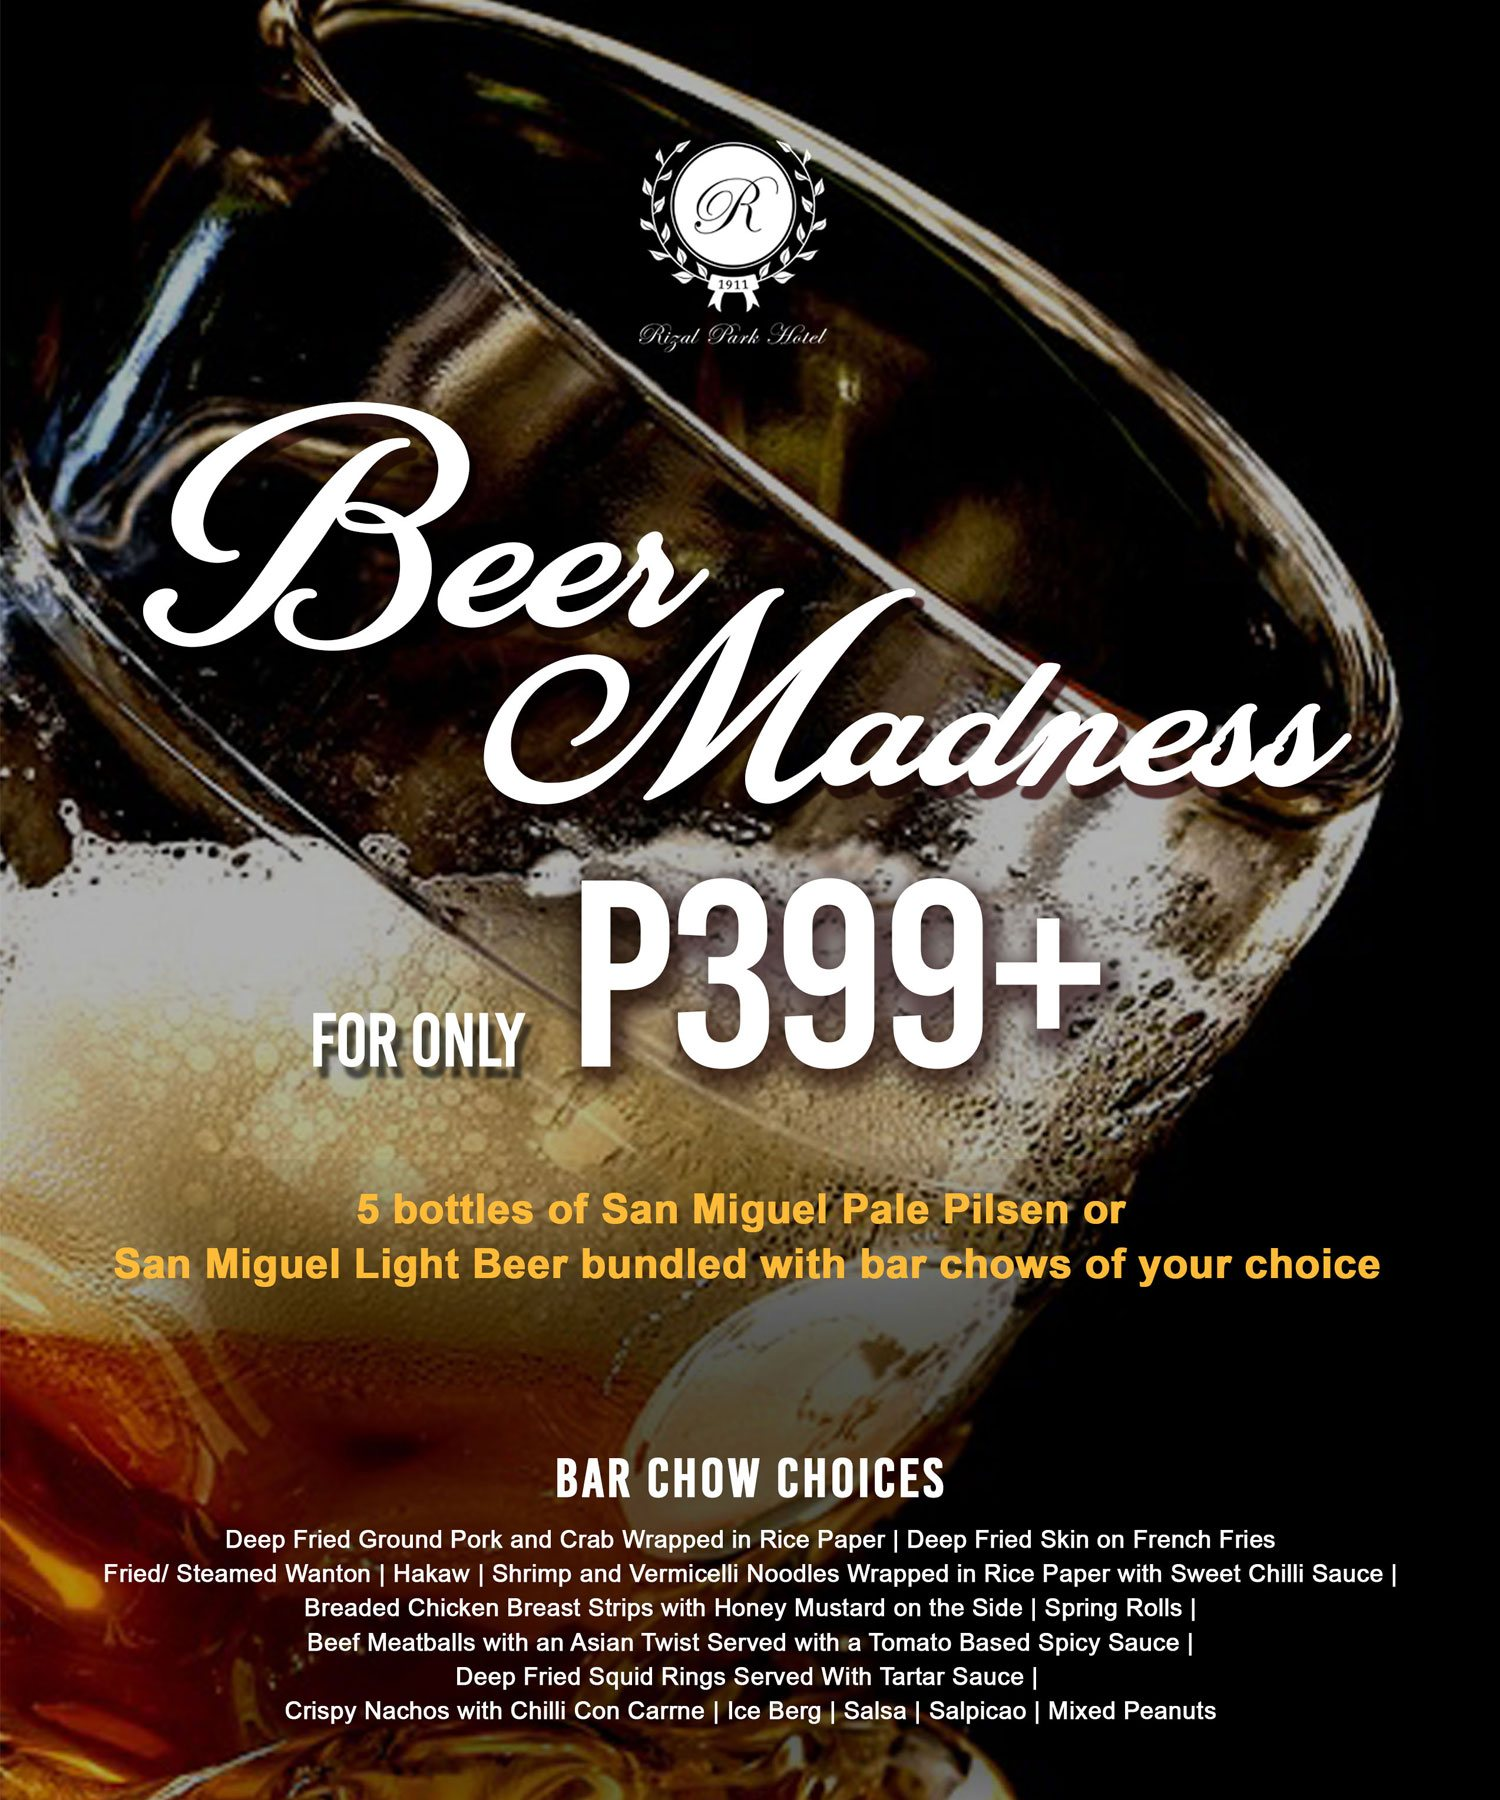 Rizal Park Hotel - Beer Madness Promo